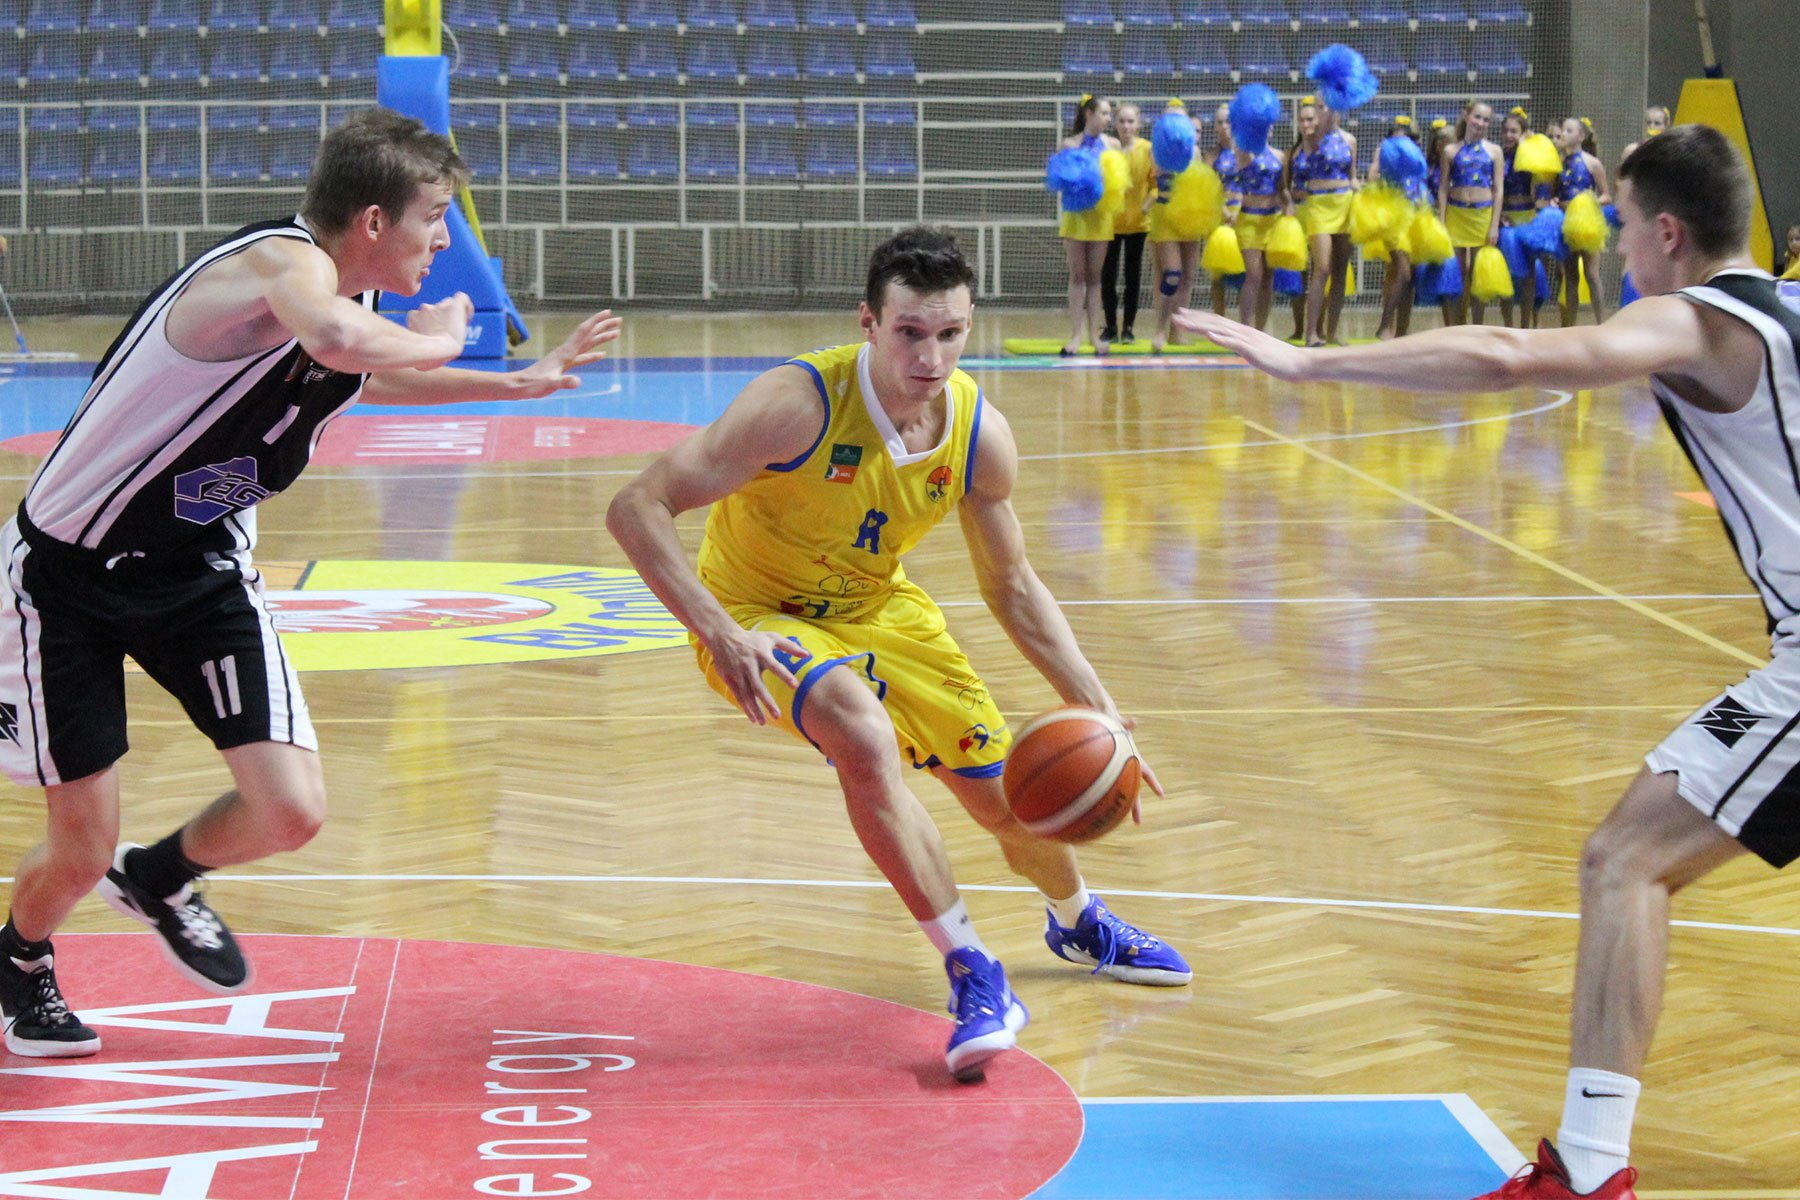 Easy win for Opava